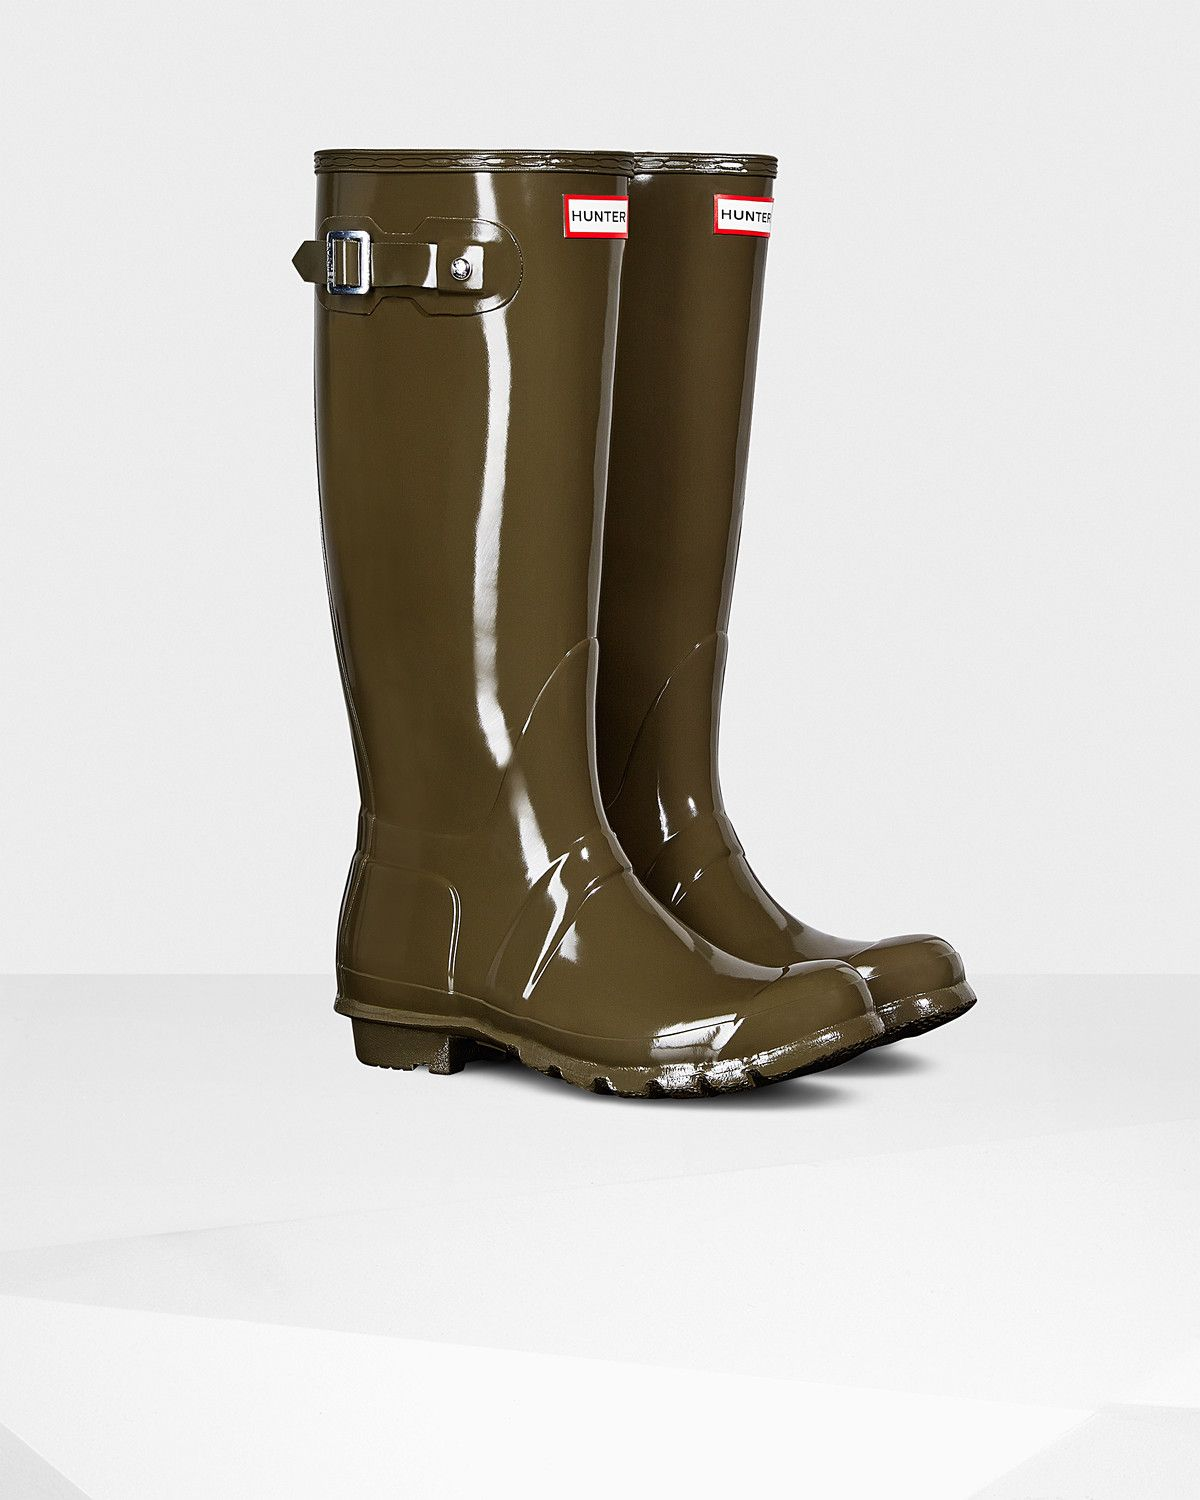 ae6442d1a085a The Original Tall Gloss features the same elements the iconic Original  boot